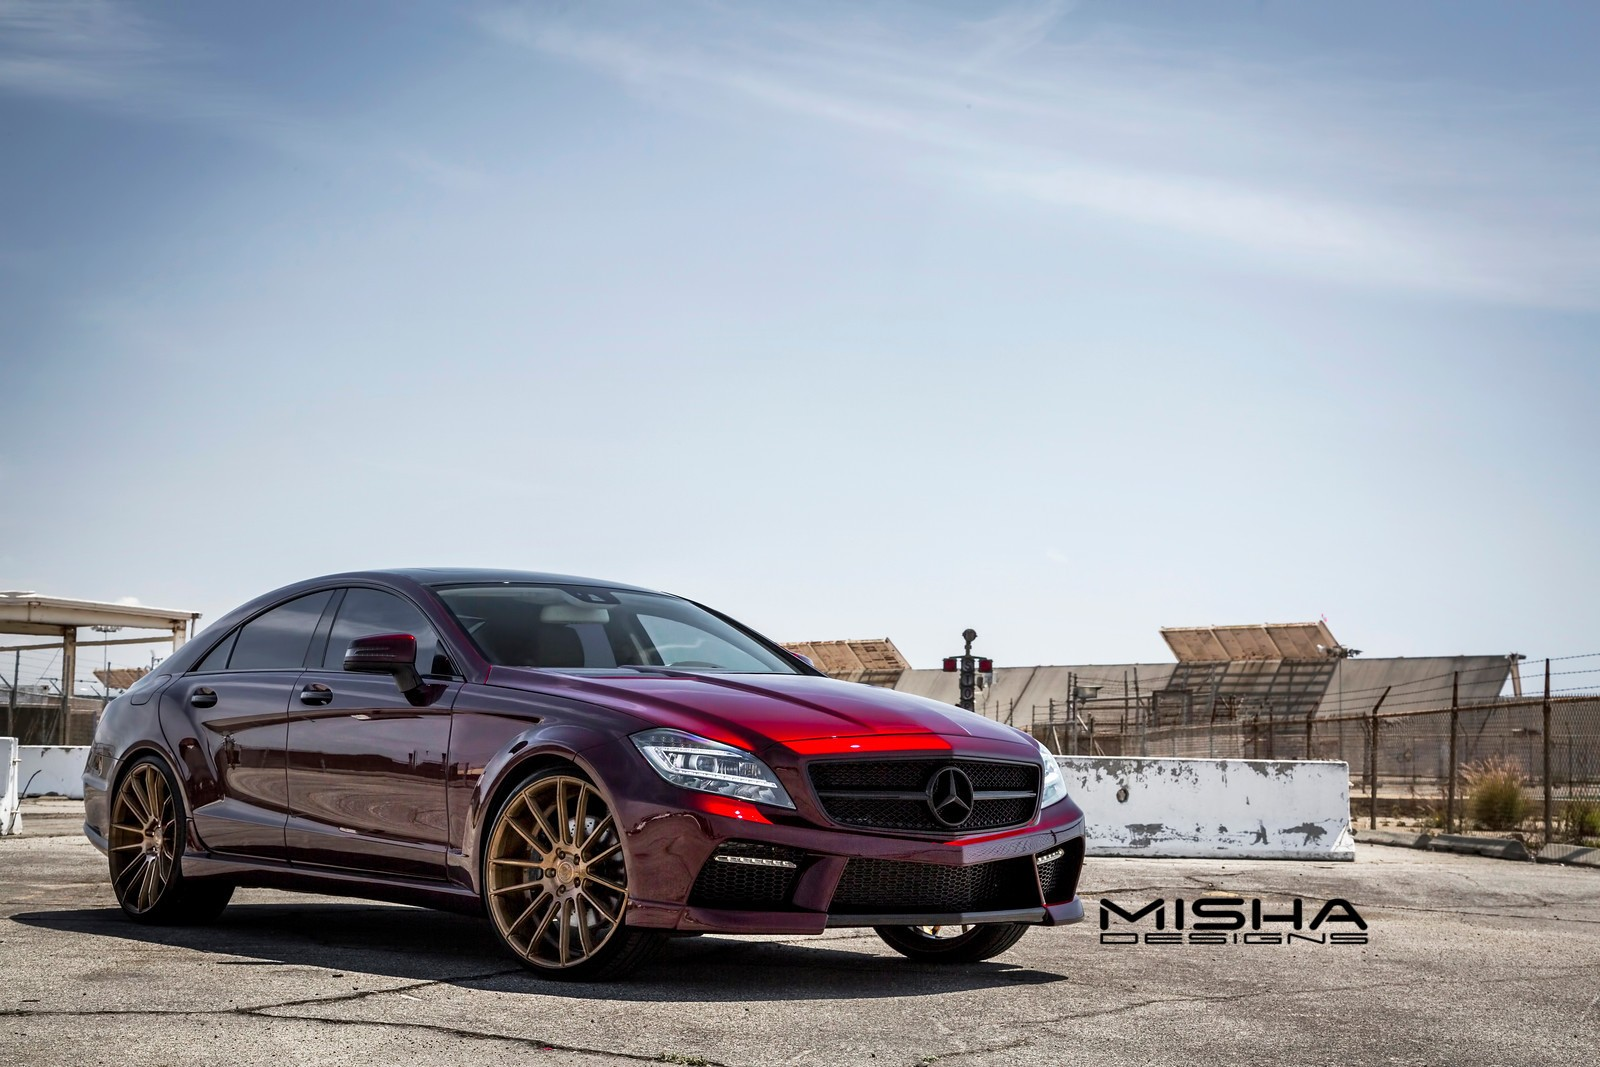 Misha designs takes a look back at its mercedes benz cls for Looking for used mercedes benz